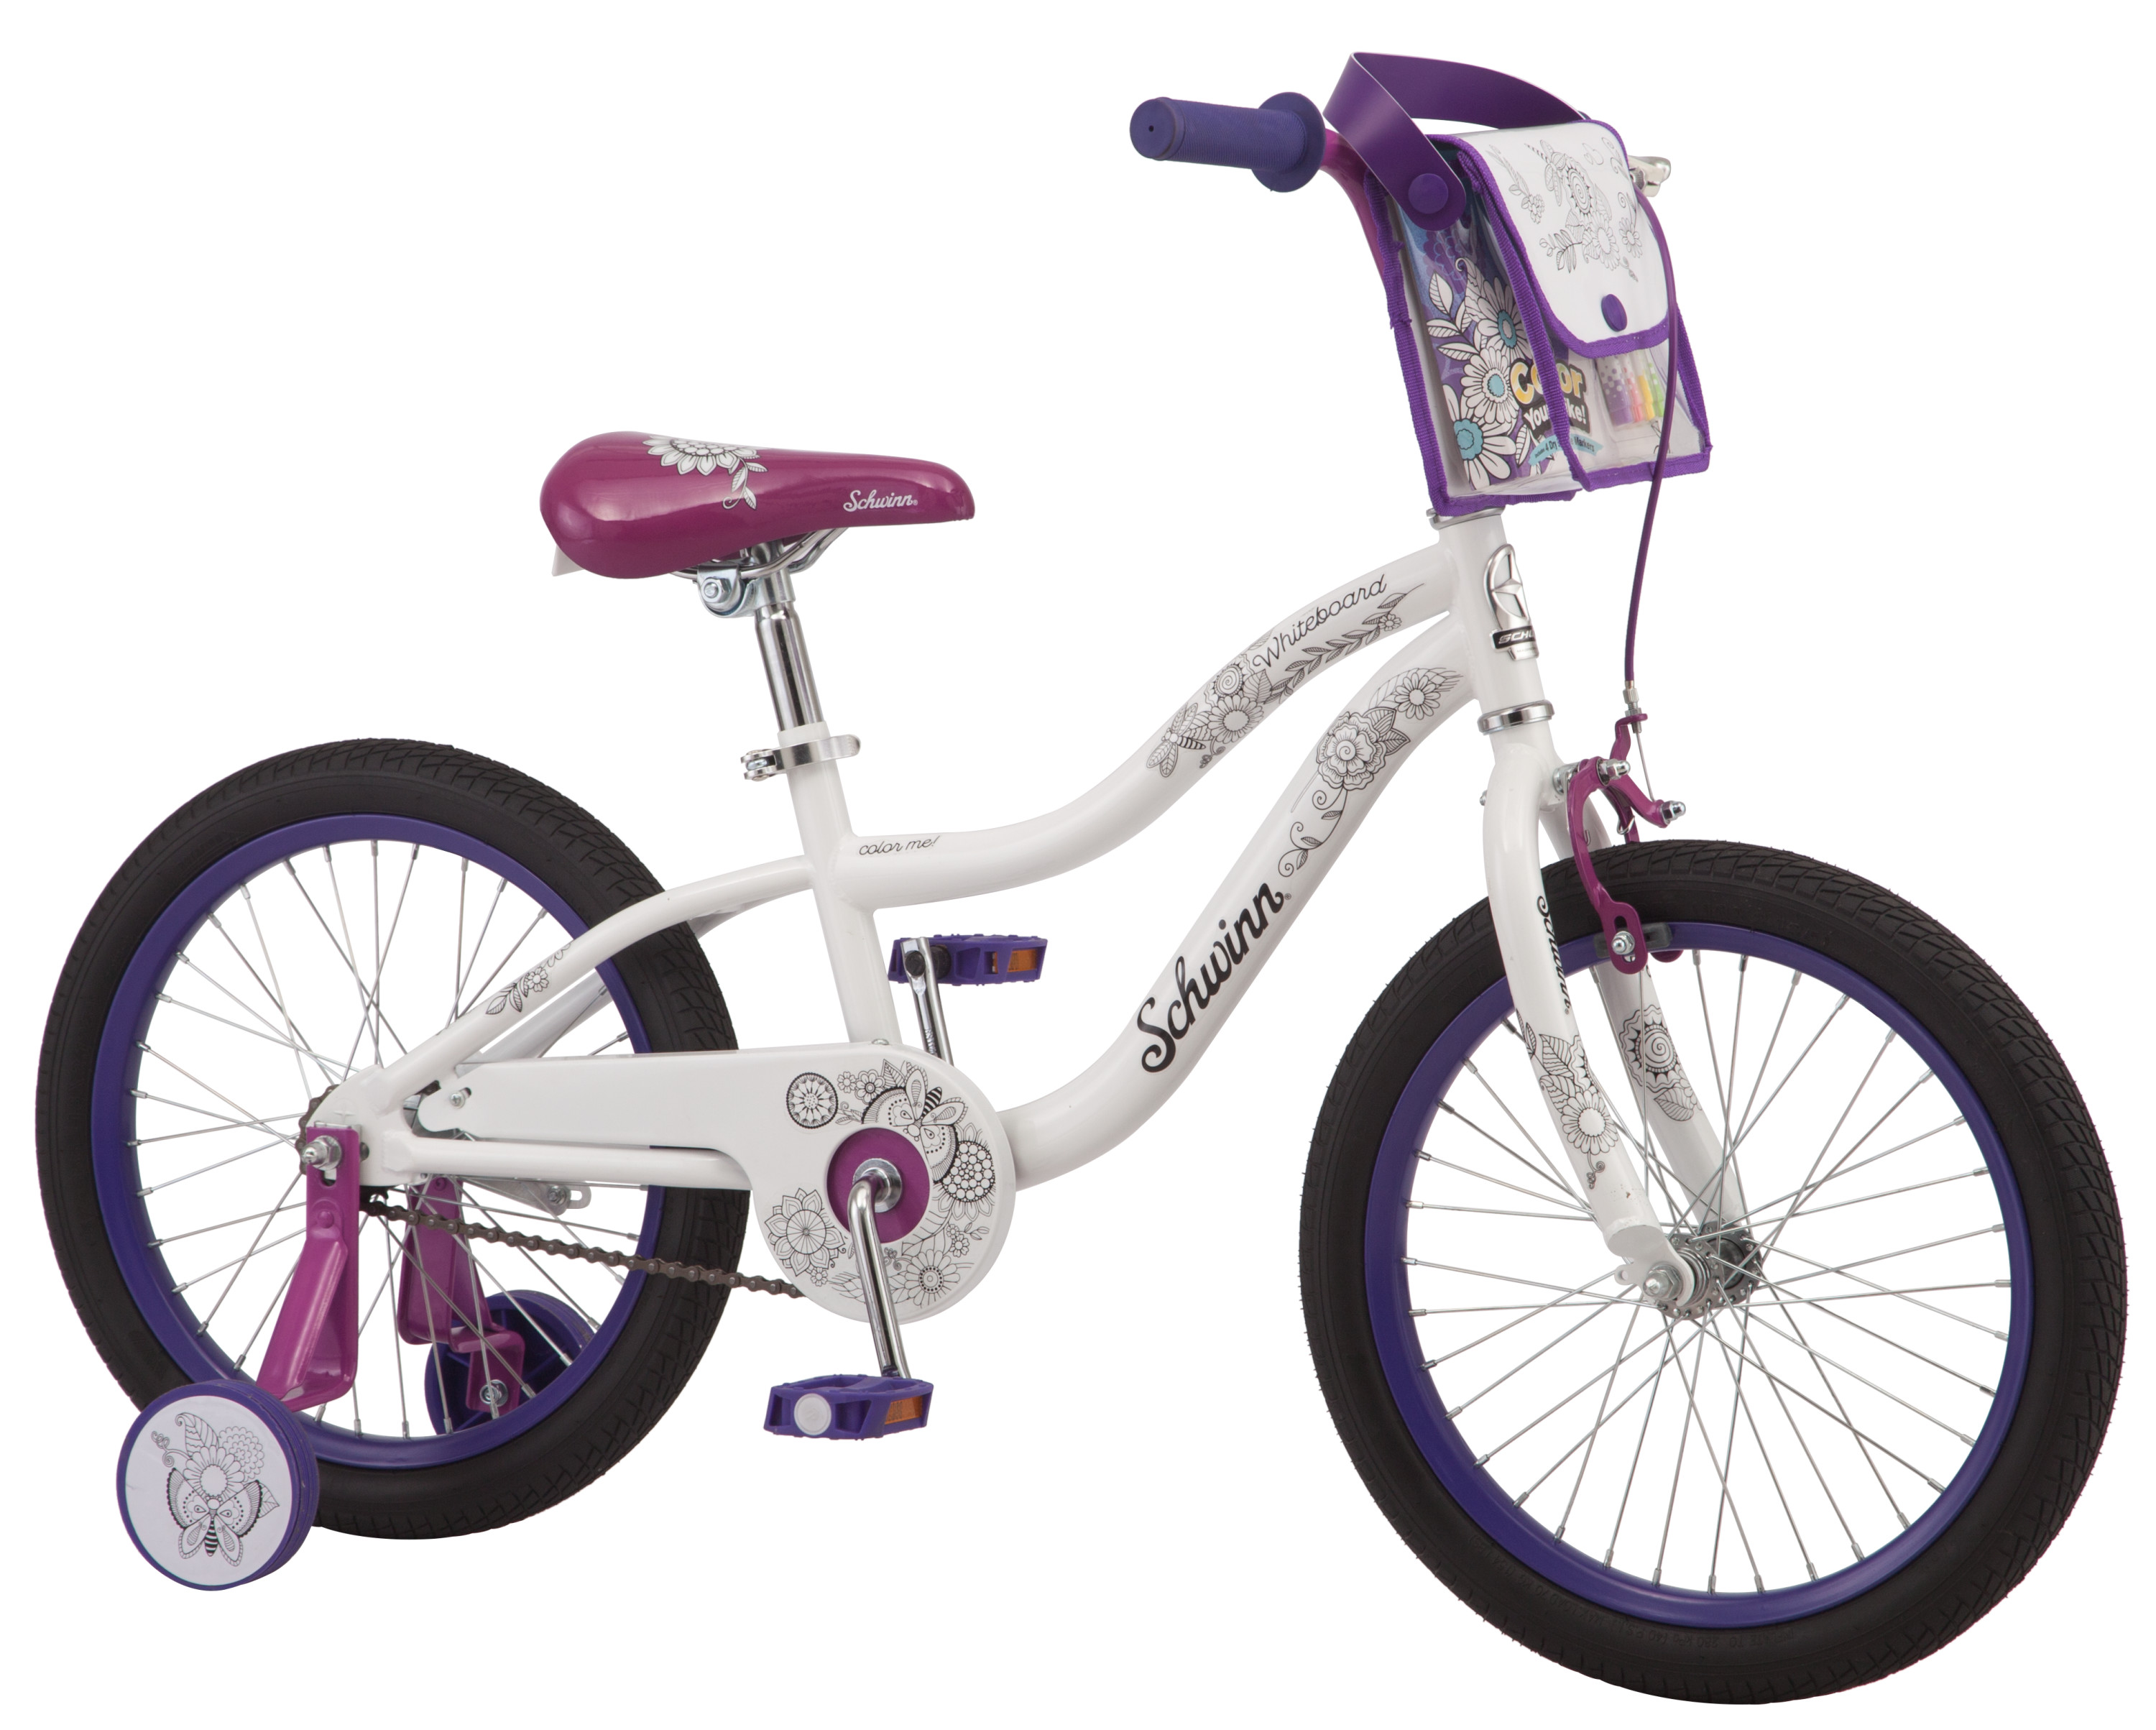 Schwinn WhiteBoard Color-Me Kids Bike, 18 inch wheel, training wheels, coloring, 4 dry erase markers and bag... by Pacific Cycle